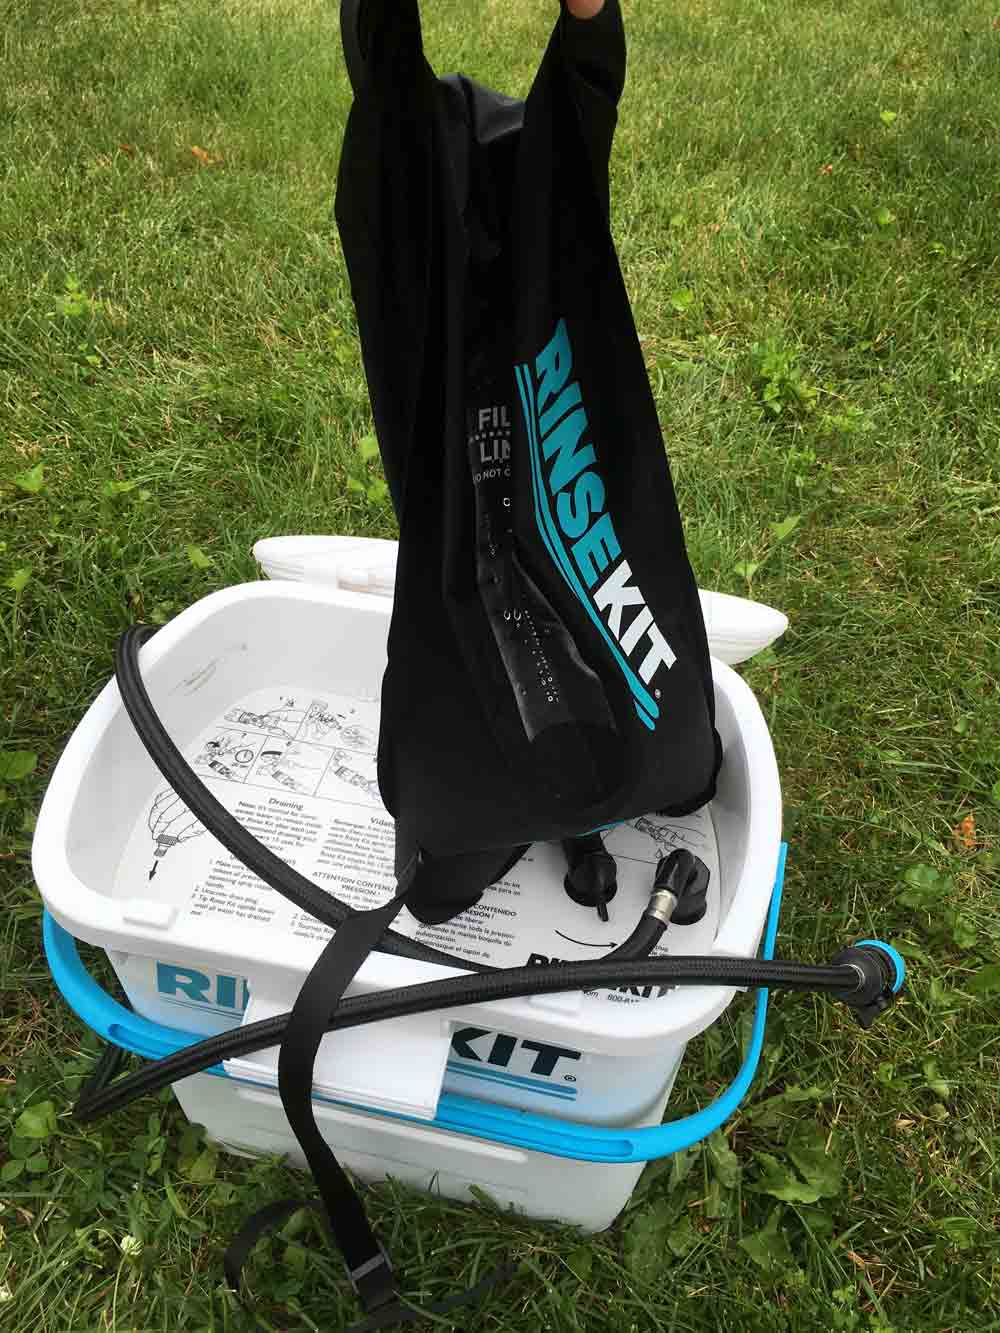 RinseKit - The Portable Shower You Need in Your Camping Arsenal 16